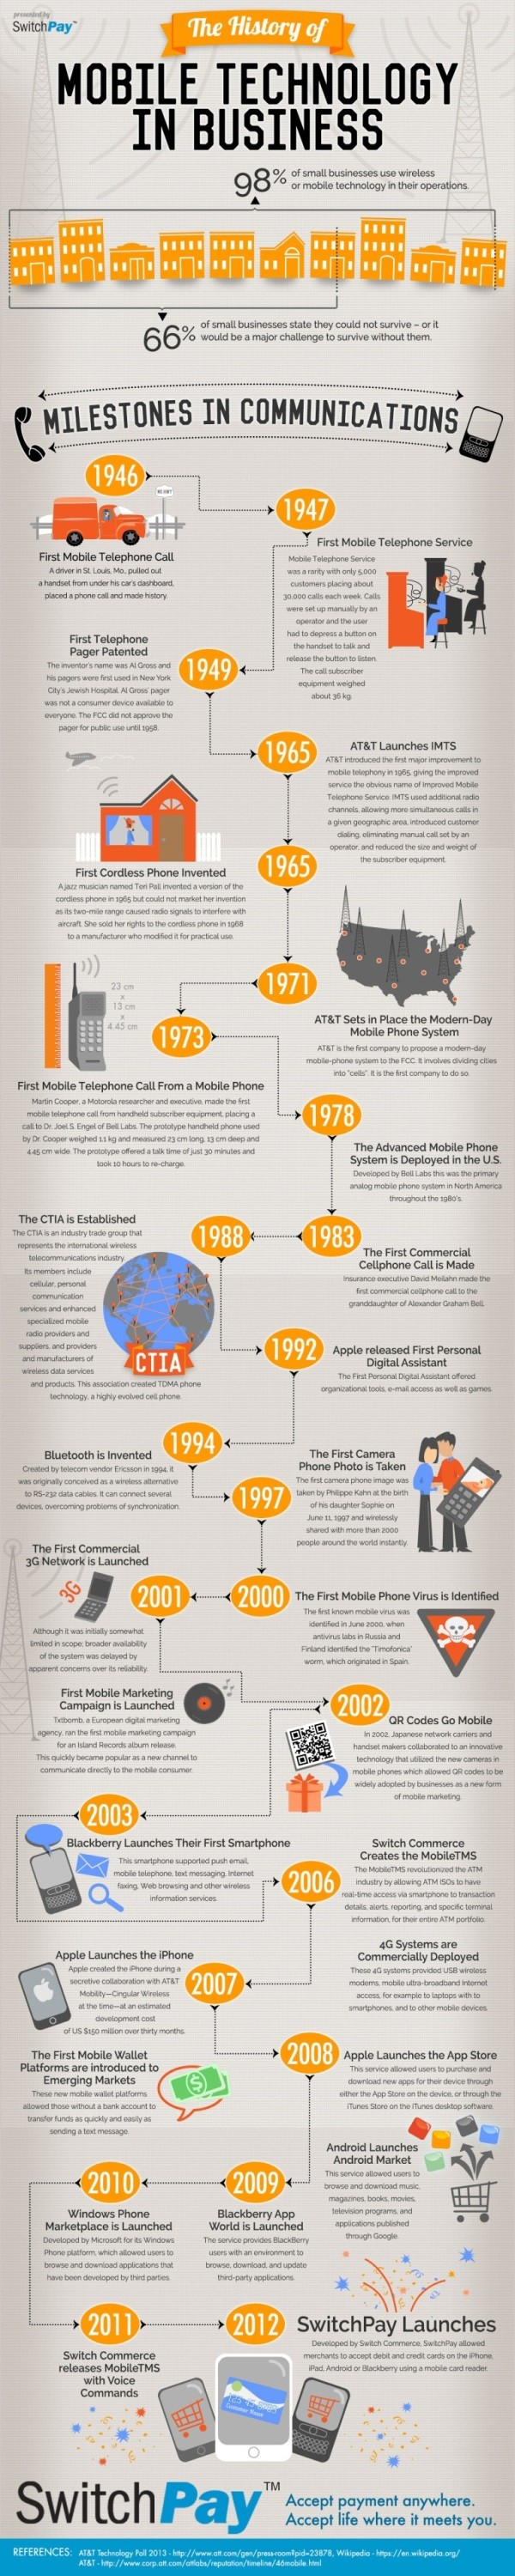 History_of_Mobile_Tech-2013